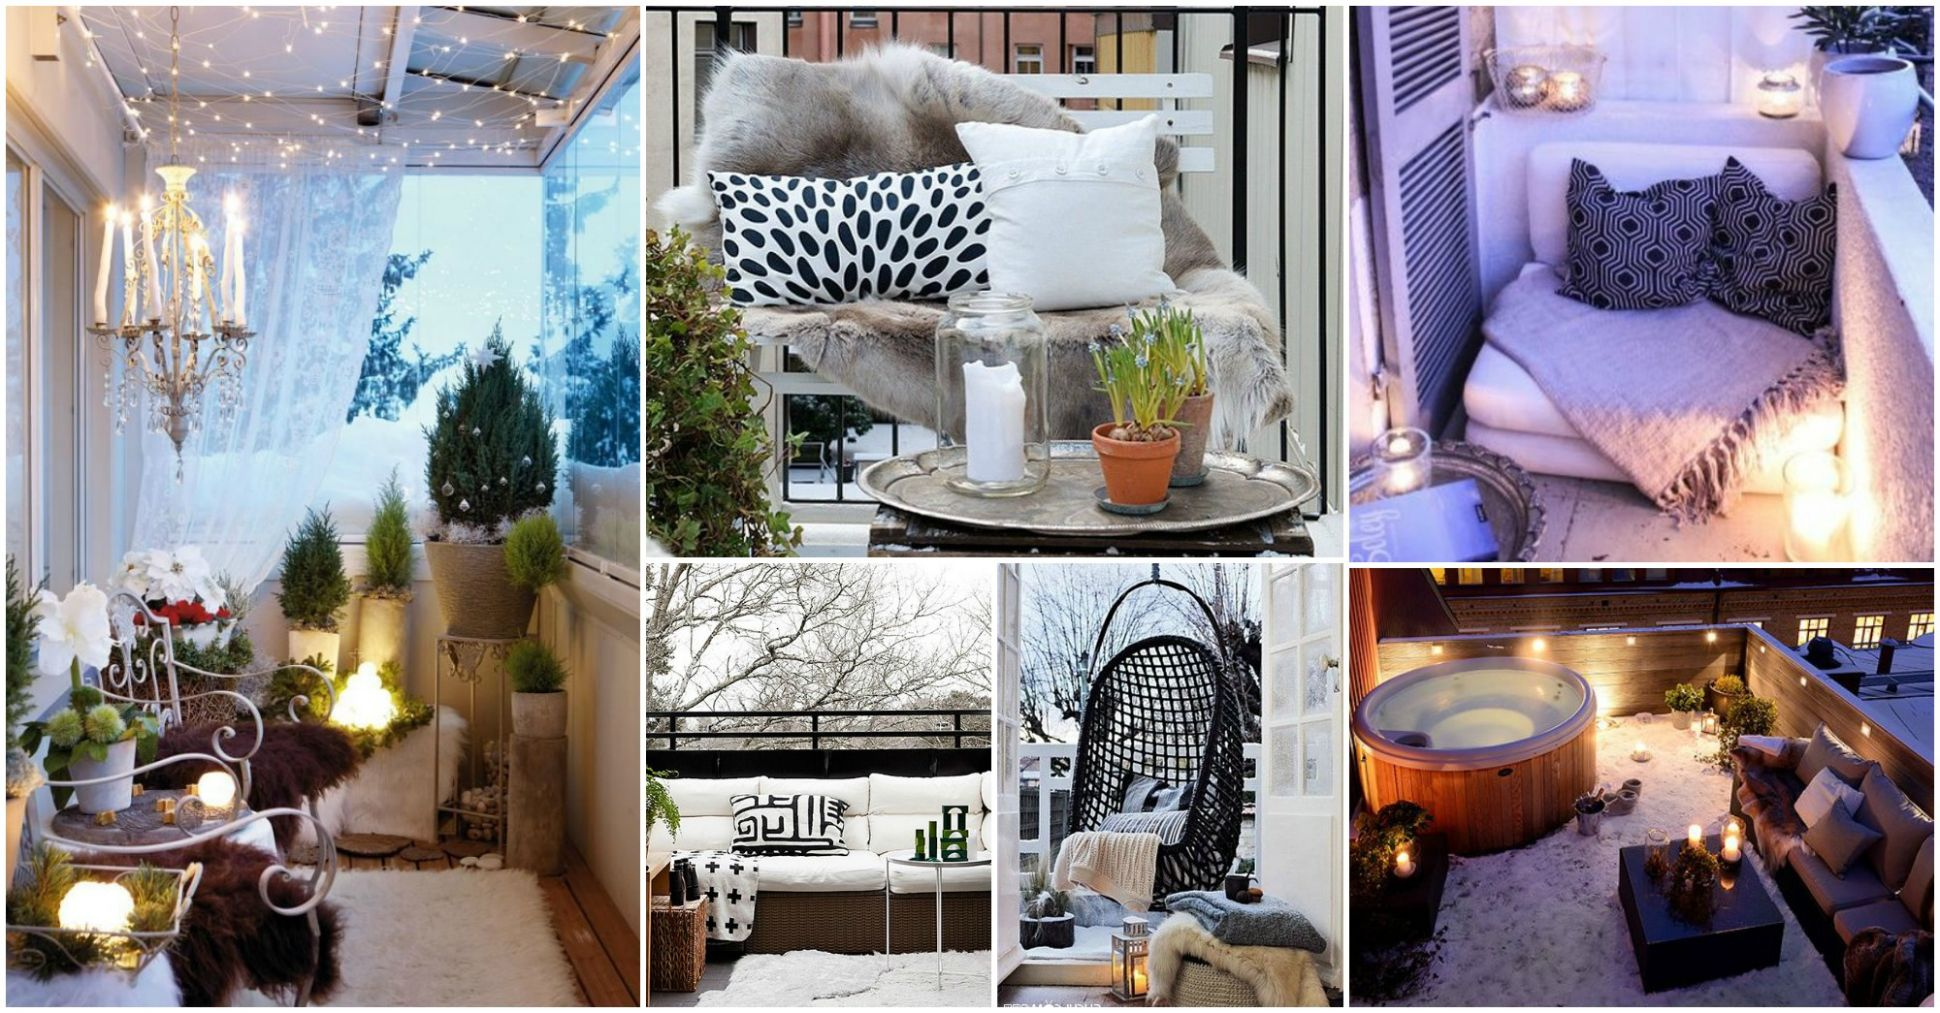 Make Your Own Winter Wonderland With These Winter Balcony Decor Ideas - balcony ideas winter